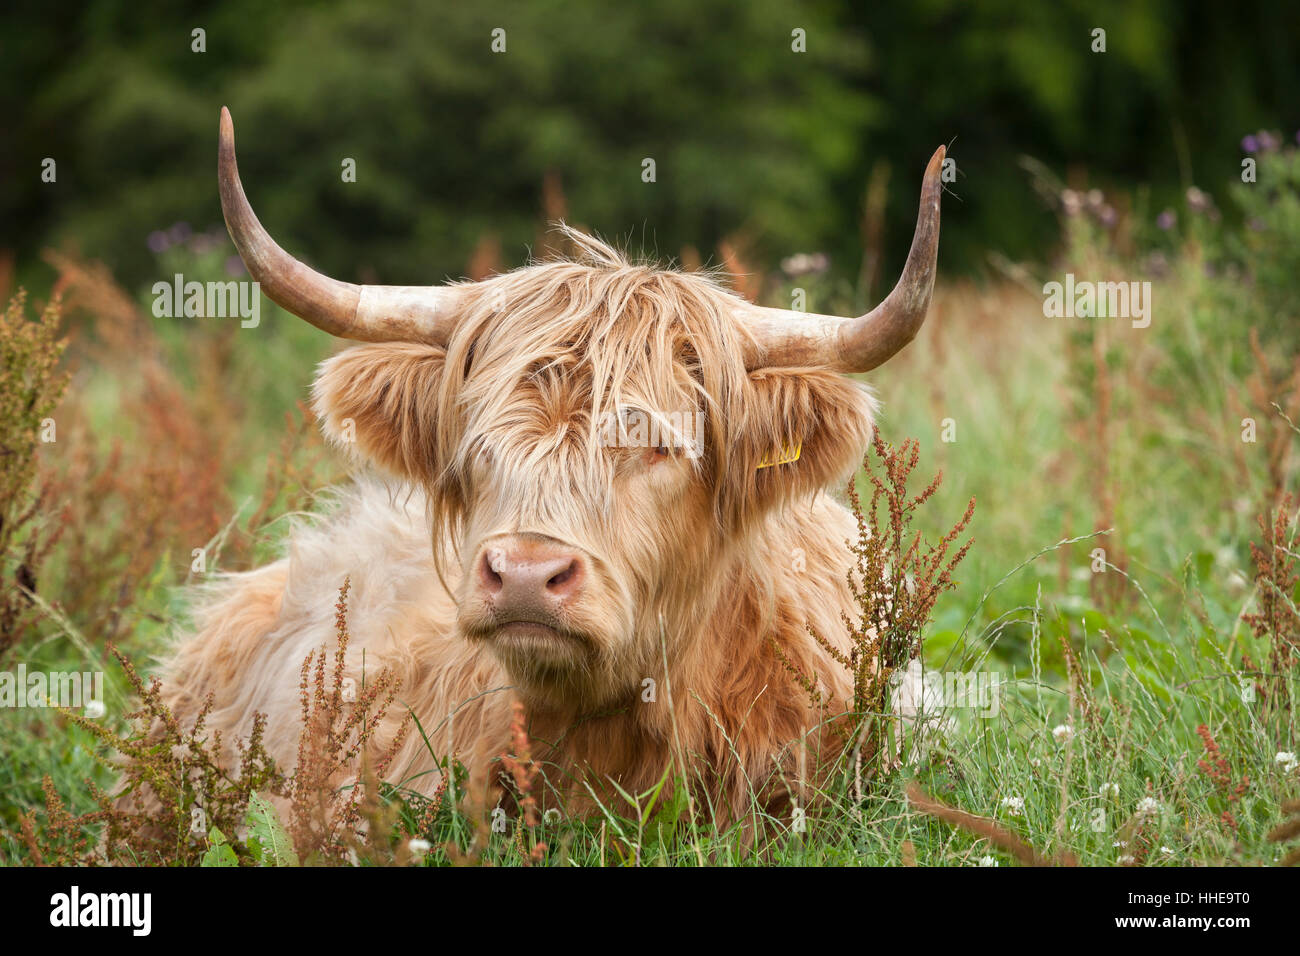 Highland  Cow in Scotland. - Stock Image